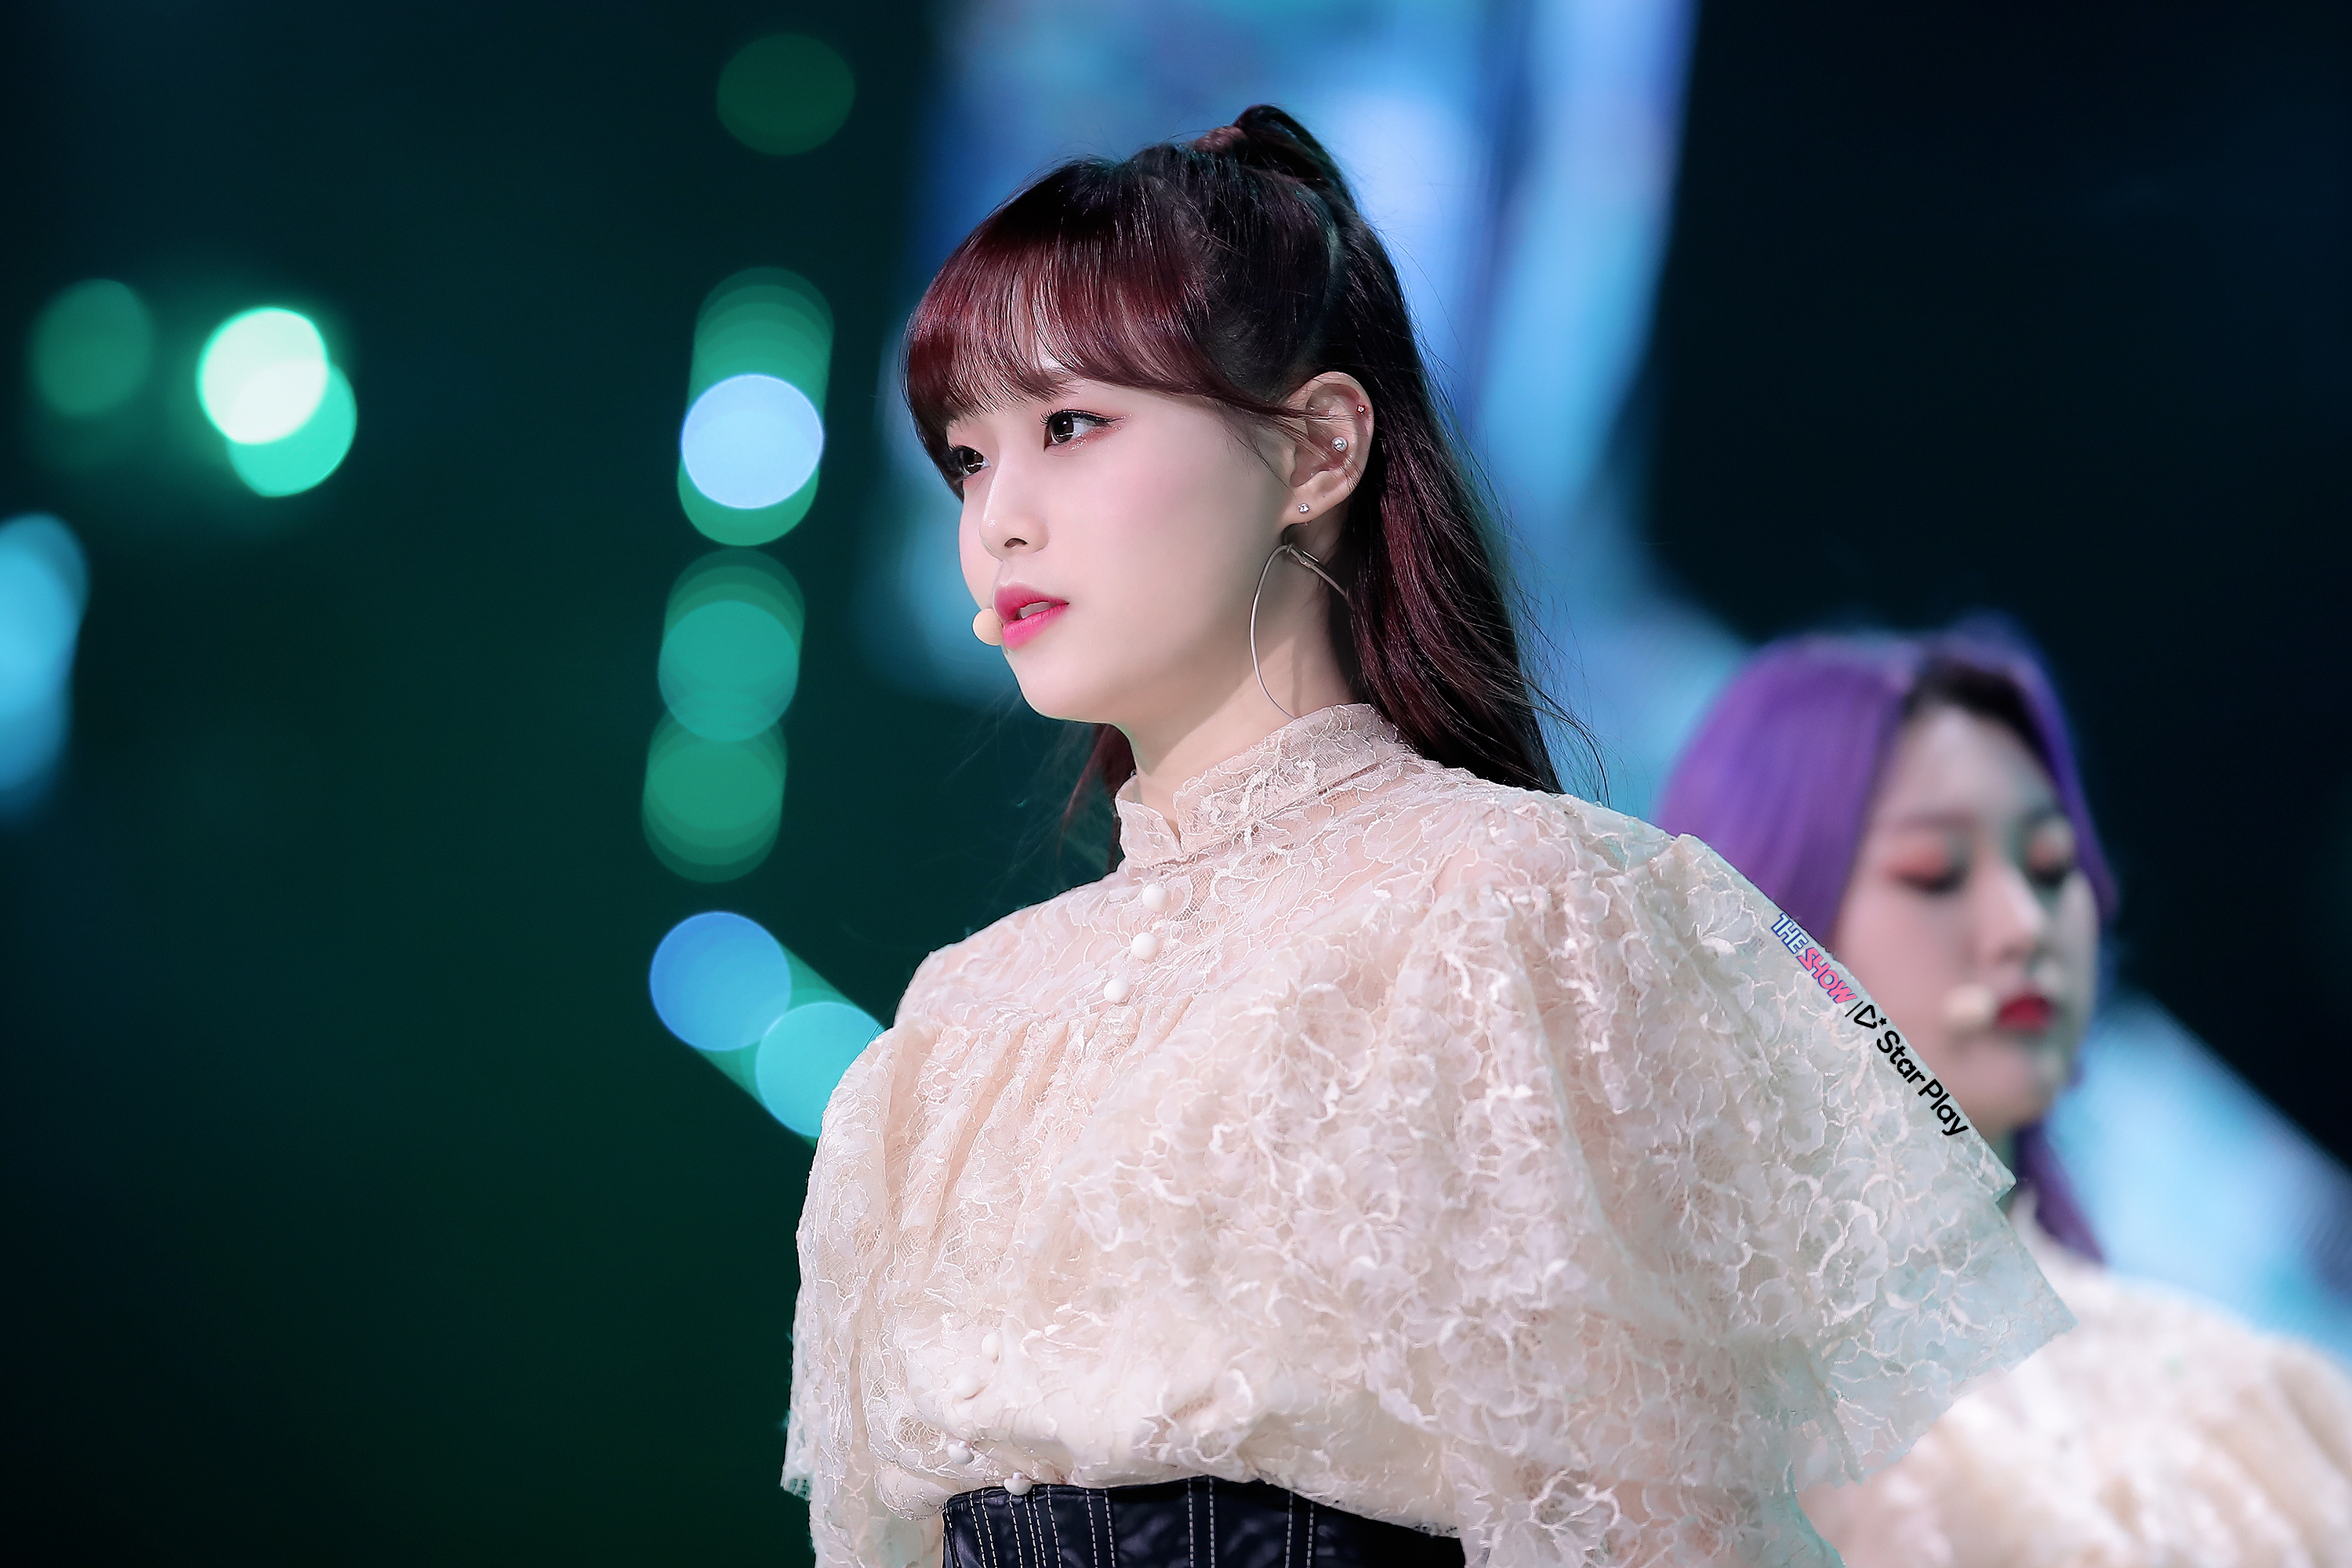 190312 THE SHOW Stage Butterfly Chuu.jpg